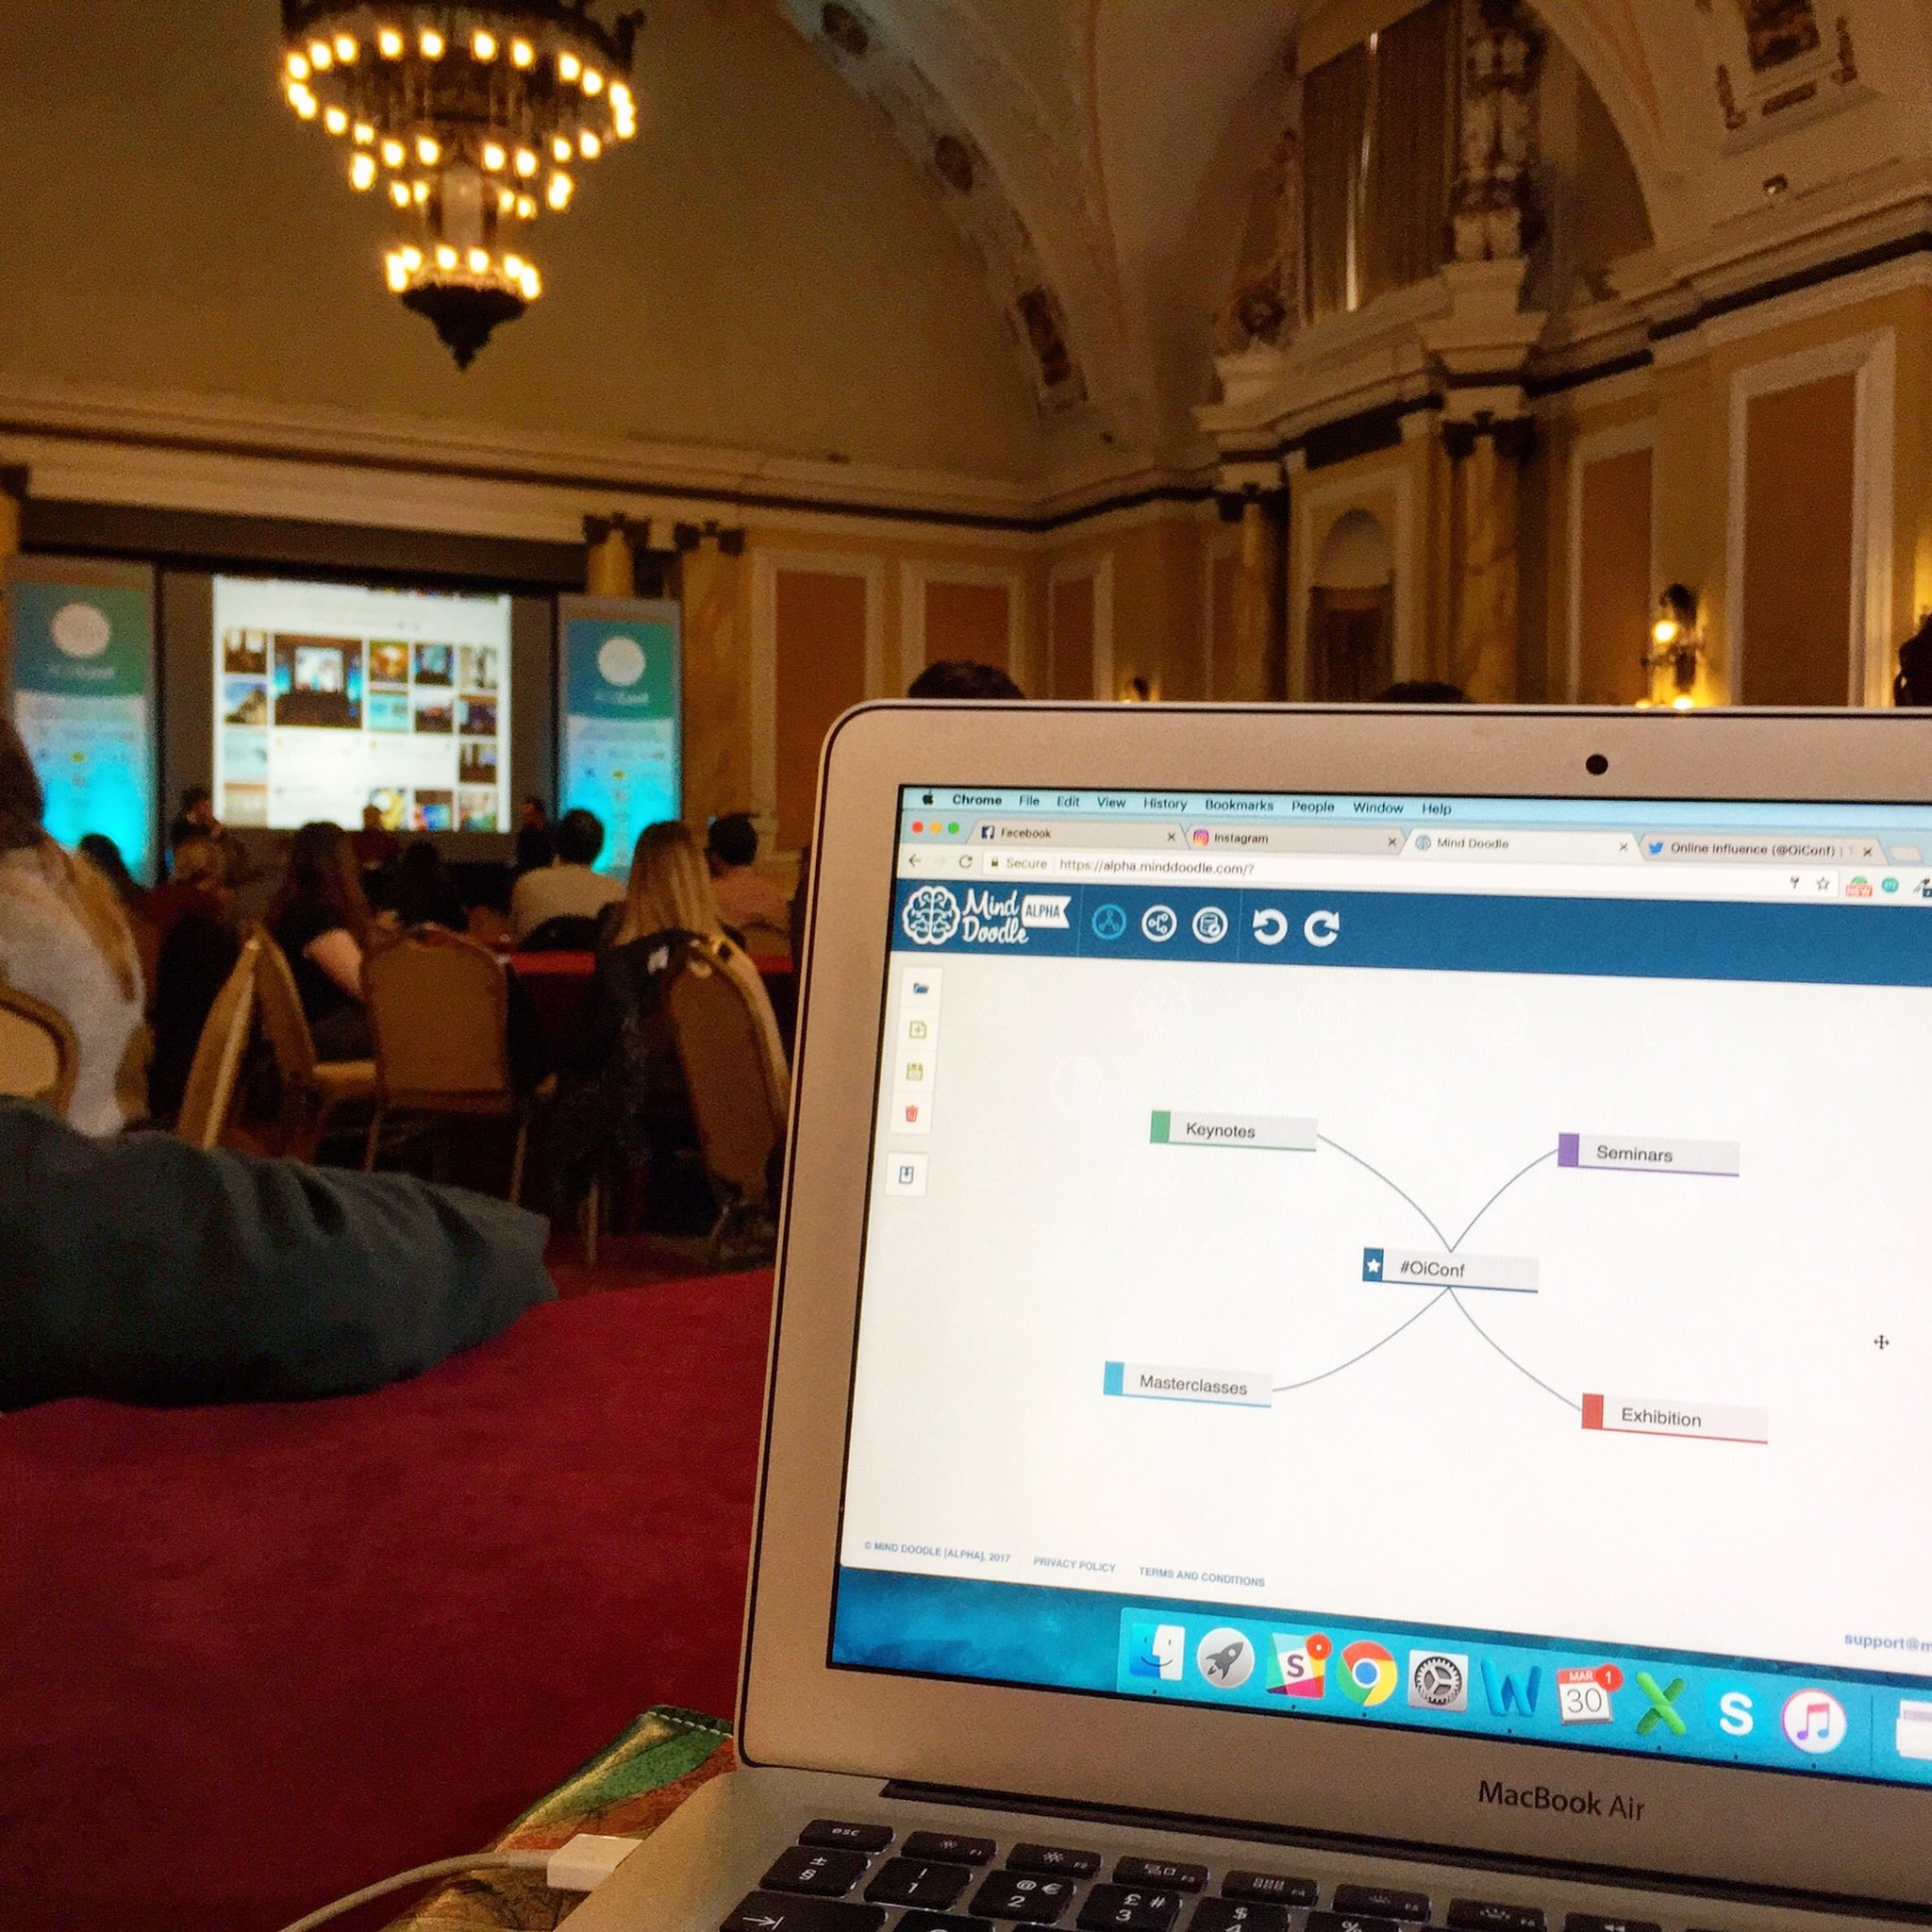 Doodling notes at #OiConf! #mindmap #online #influence https://t.co/C27XjrCozj